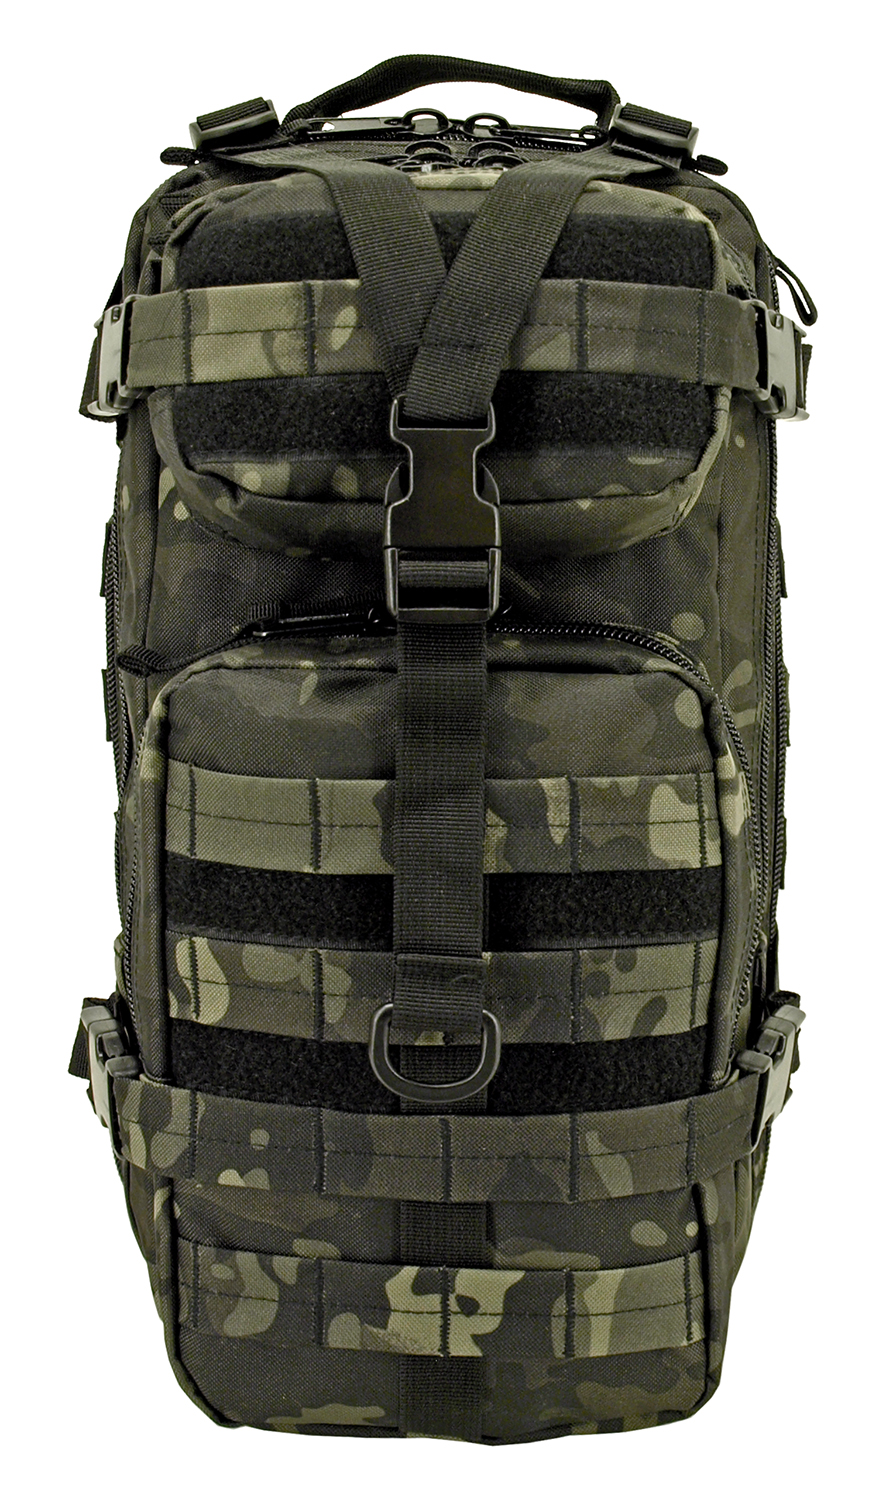 Tactical Assault Backpack - Black Multicam